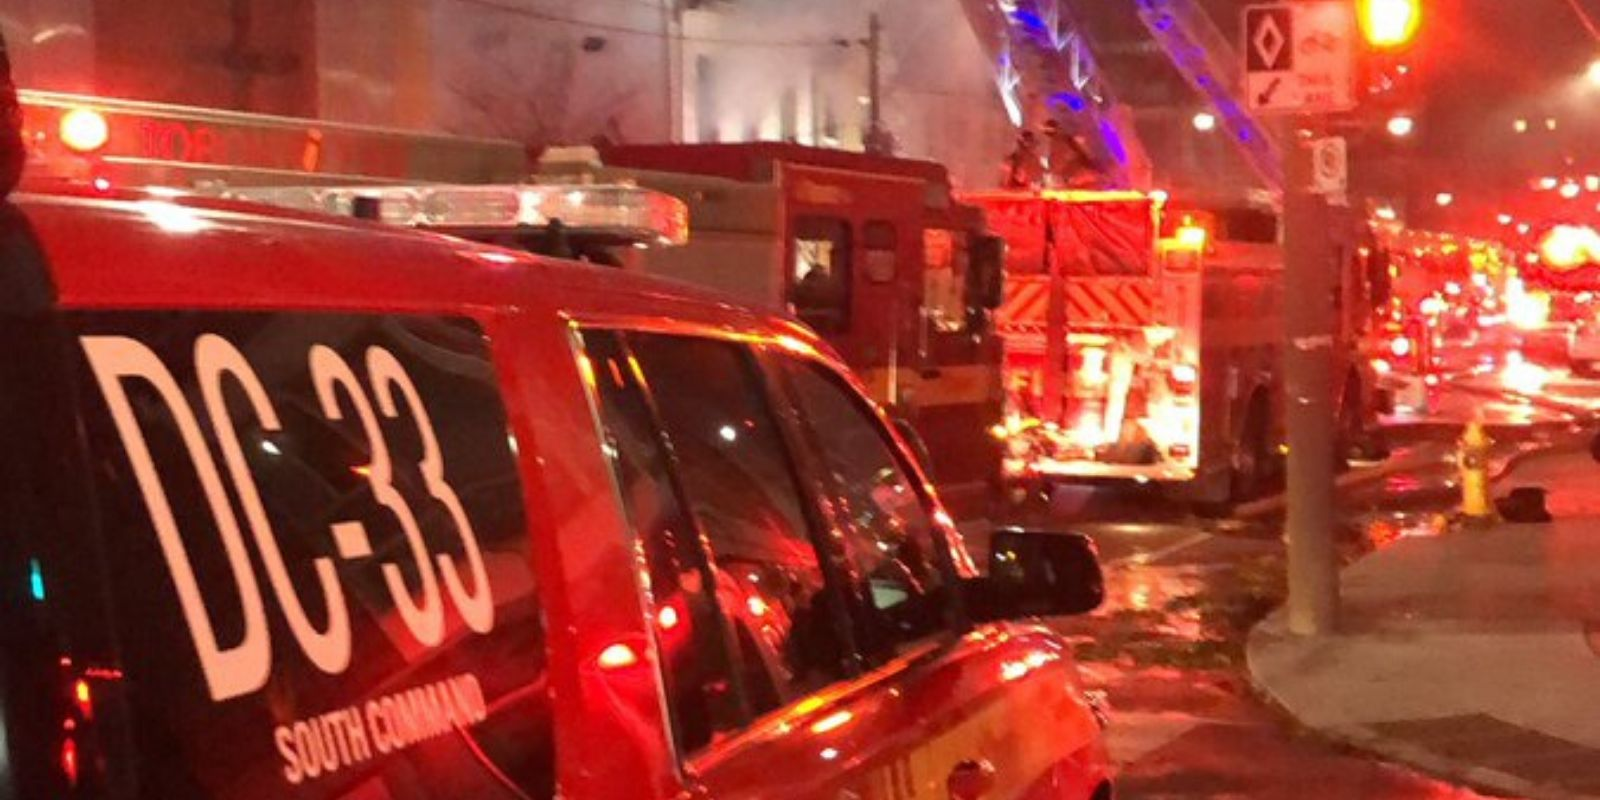 Toronto Fire Service captain in intensive care after devastating fall